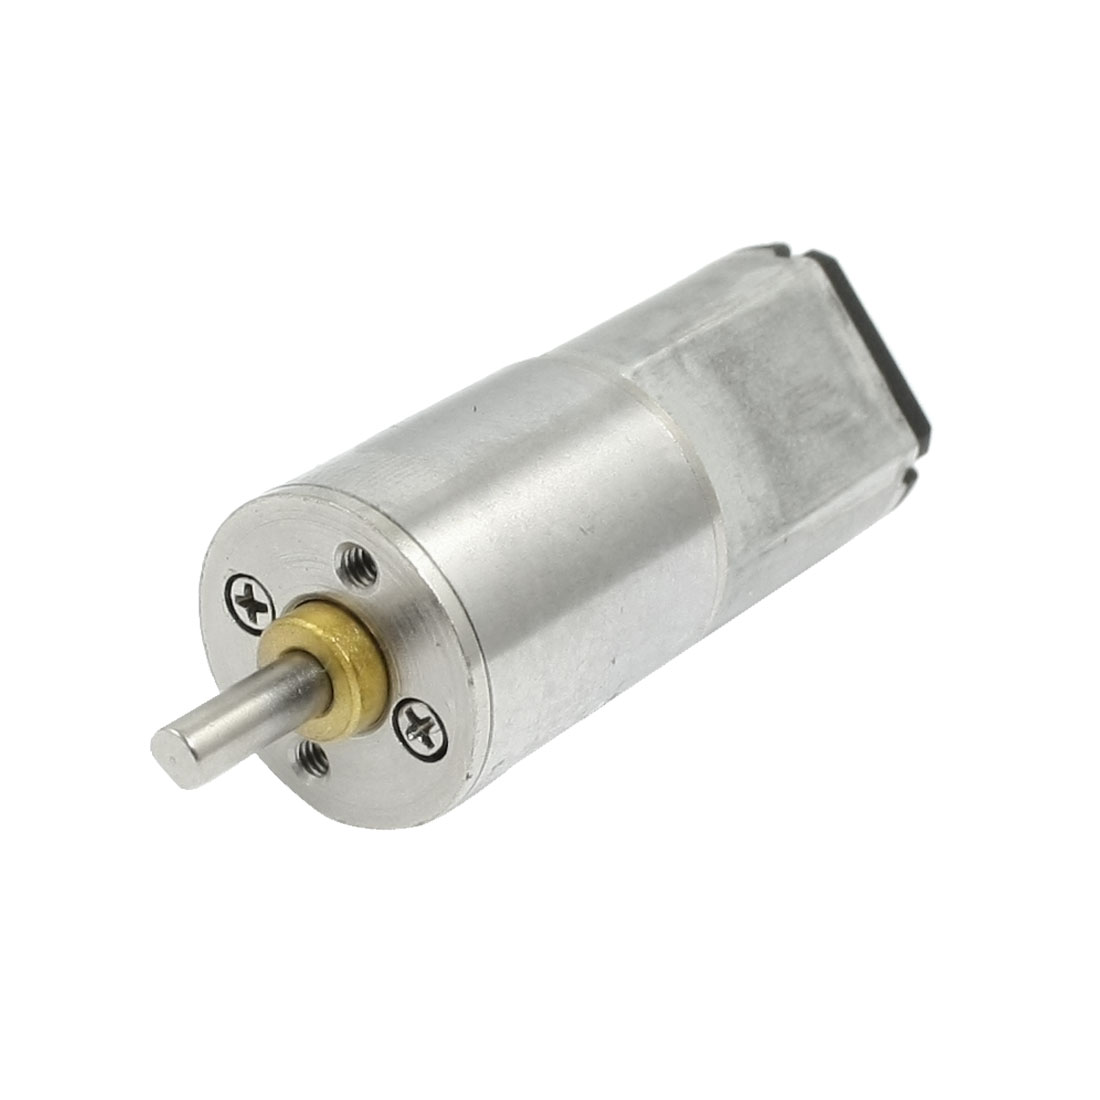 Uxcell(R) 6RPM DC 6V 0.45A High Torque Mini Electric Geared Gearbox Motor